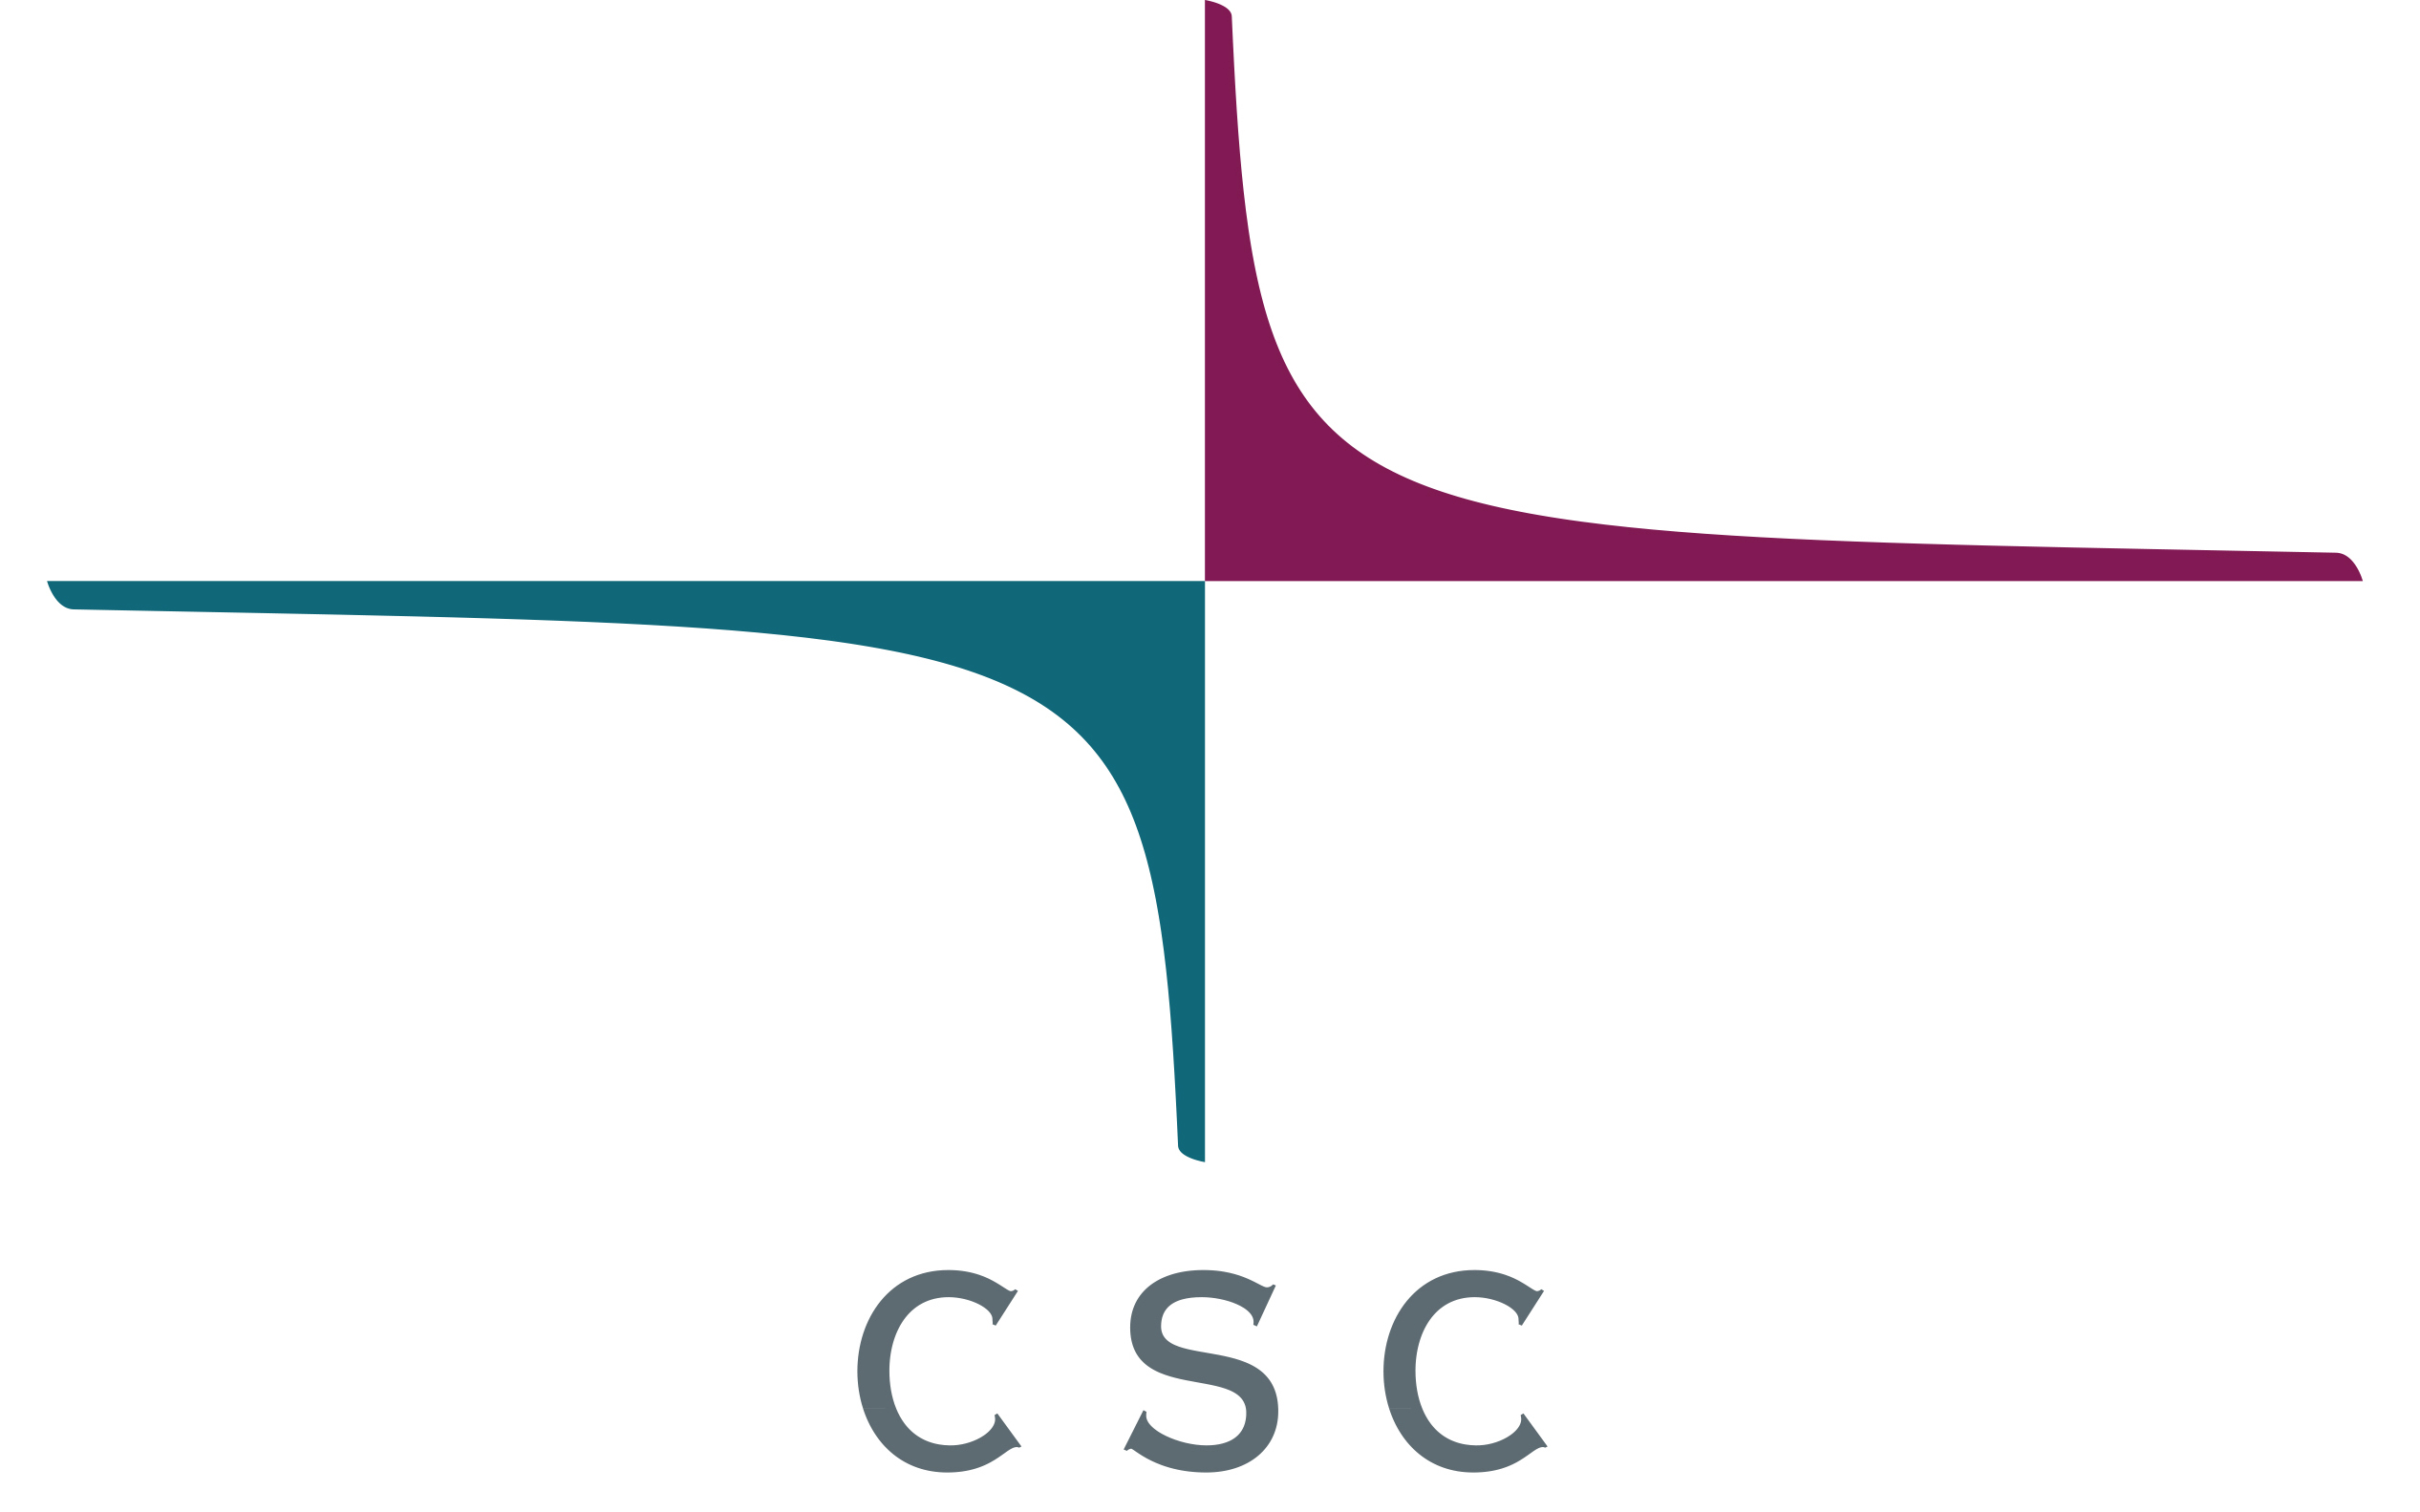 CSC - IT Center for Science logo